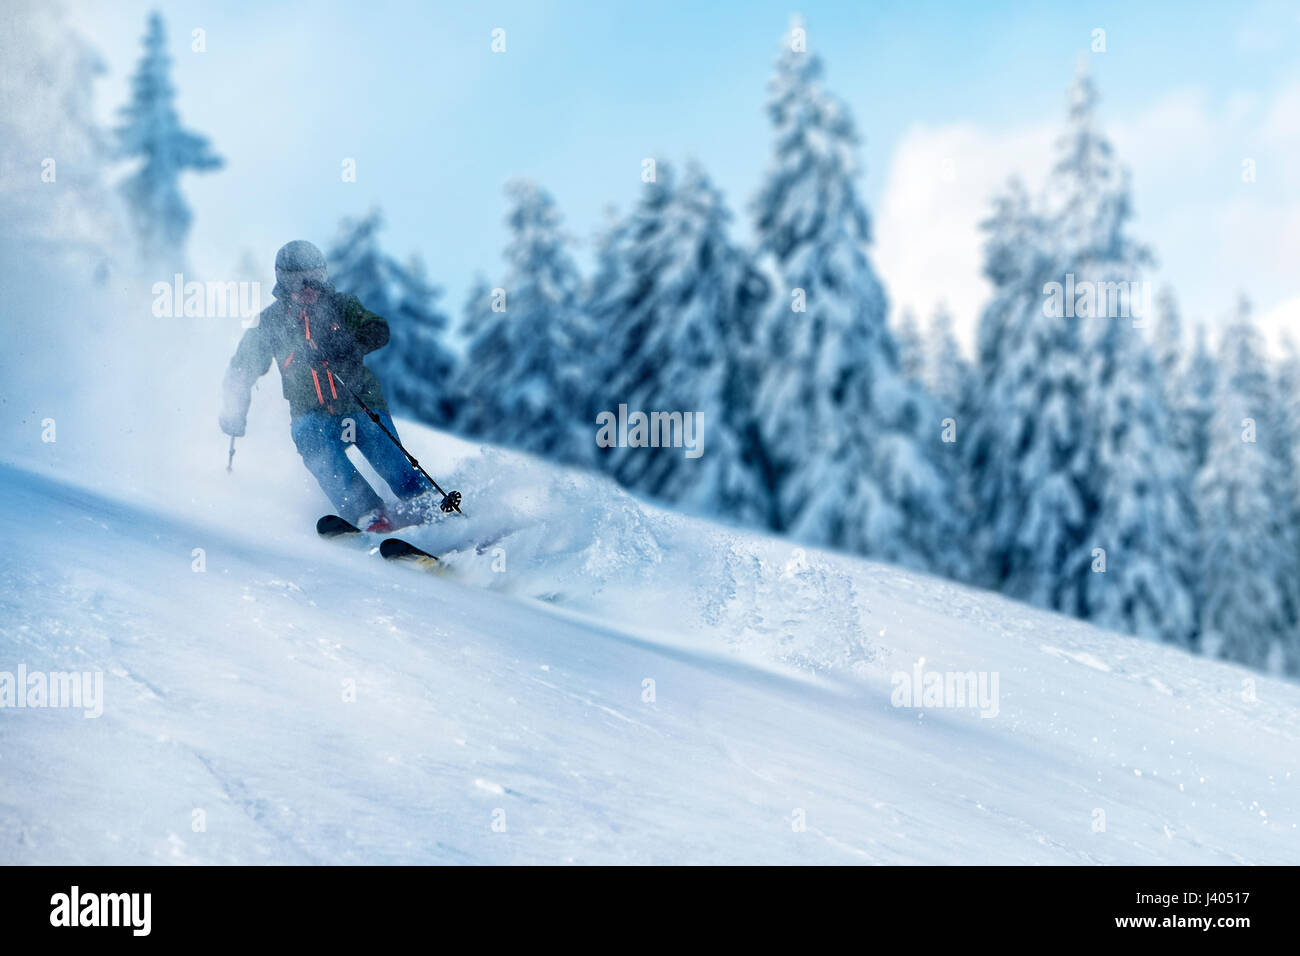 Freerider in backcountry powder snow with fir trees in the background. The skier is surrounded by a snow cloud. - Stock Image